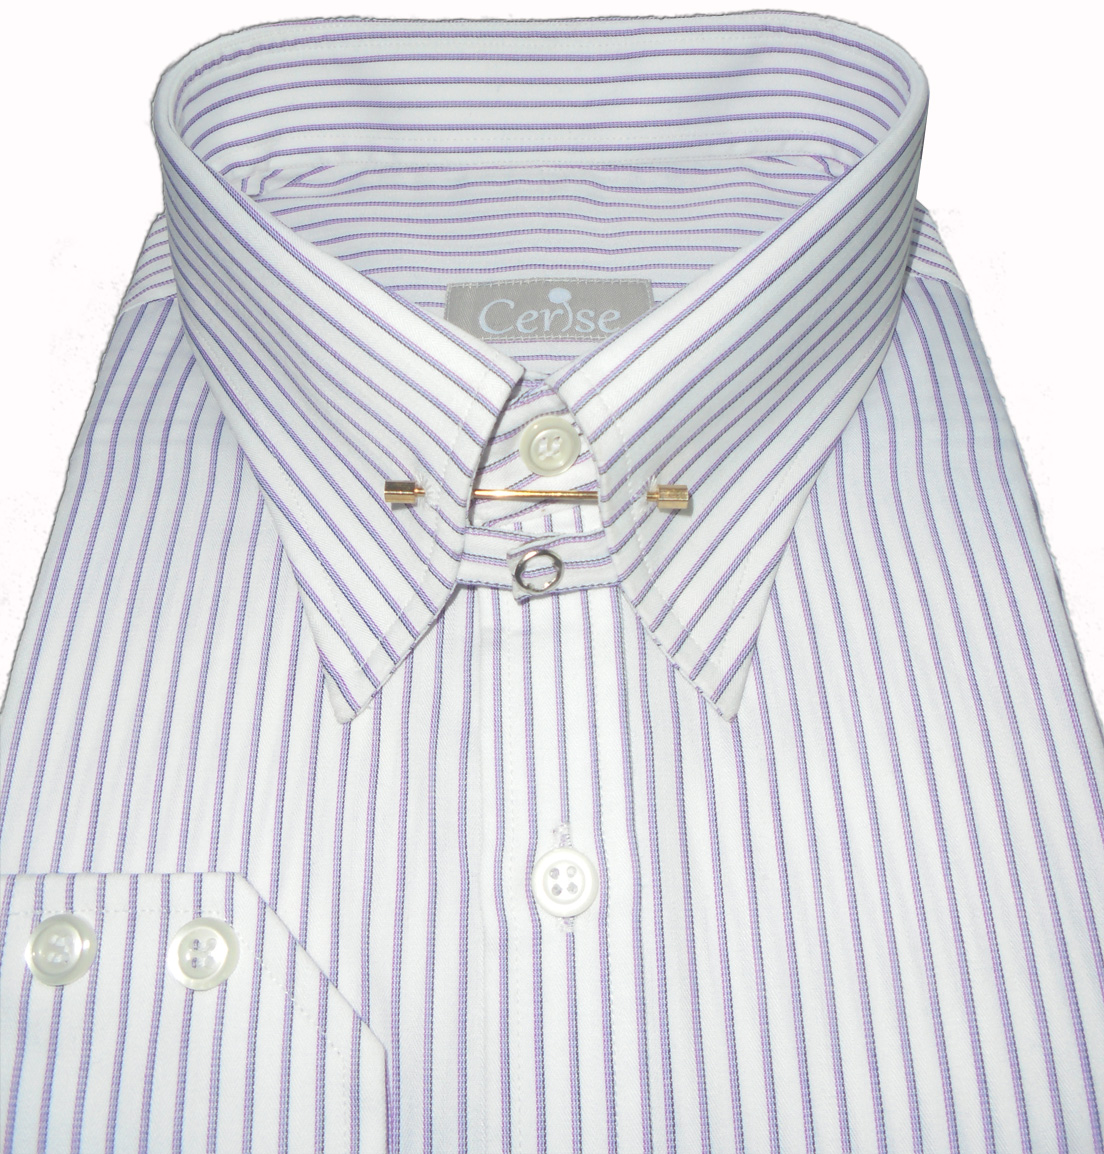 Tab Collar Dress Shirts Tab Collar Shirts Tab Collar Dress